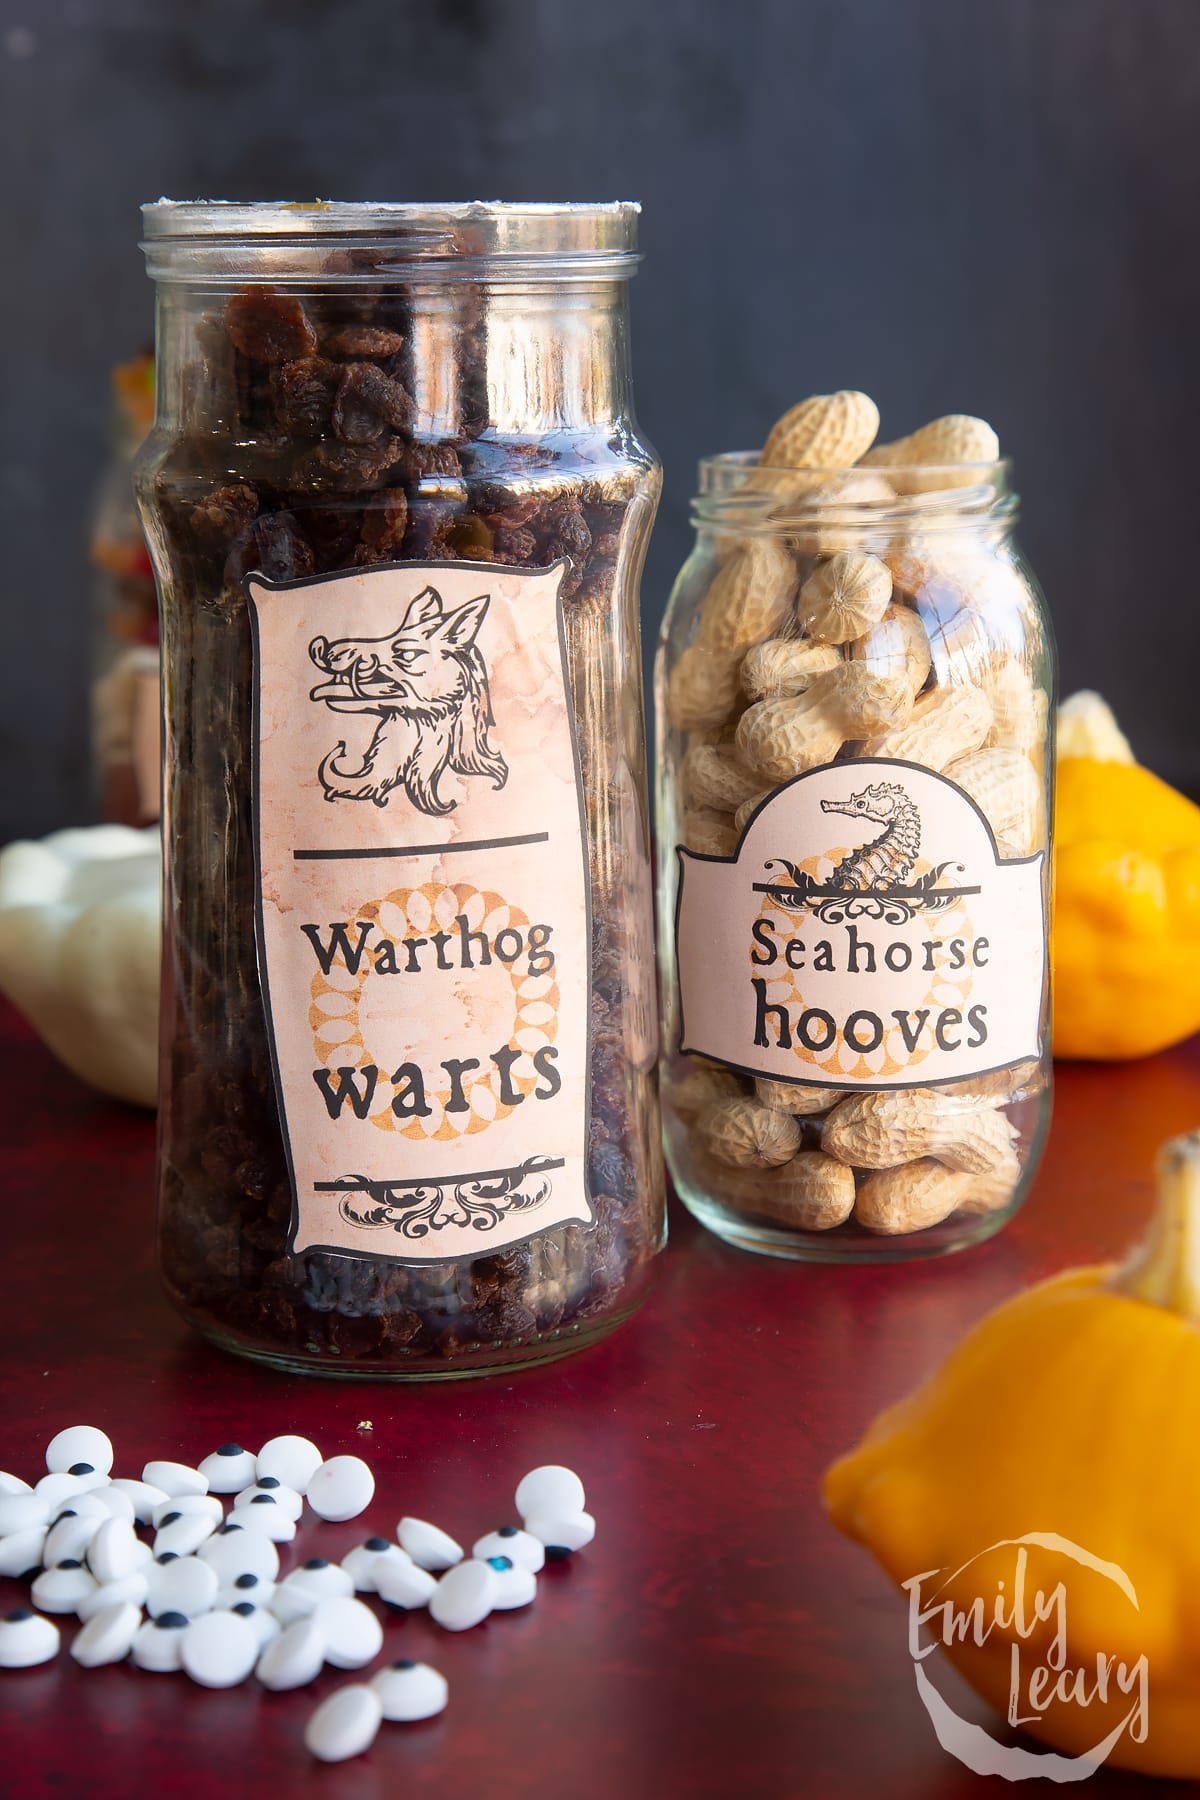 Two jars of different sizes, bearing Halloween apothecary labels. The jars contain raisins (Warthog warts) and Monkey Nuts (Seahorse hooves).